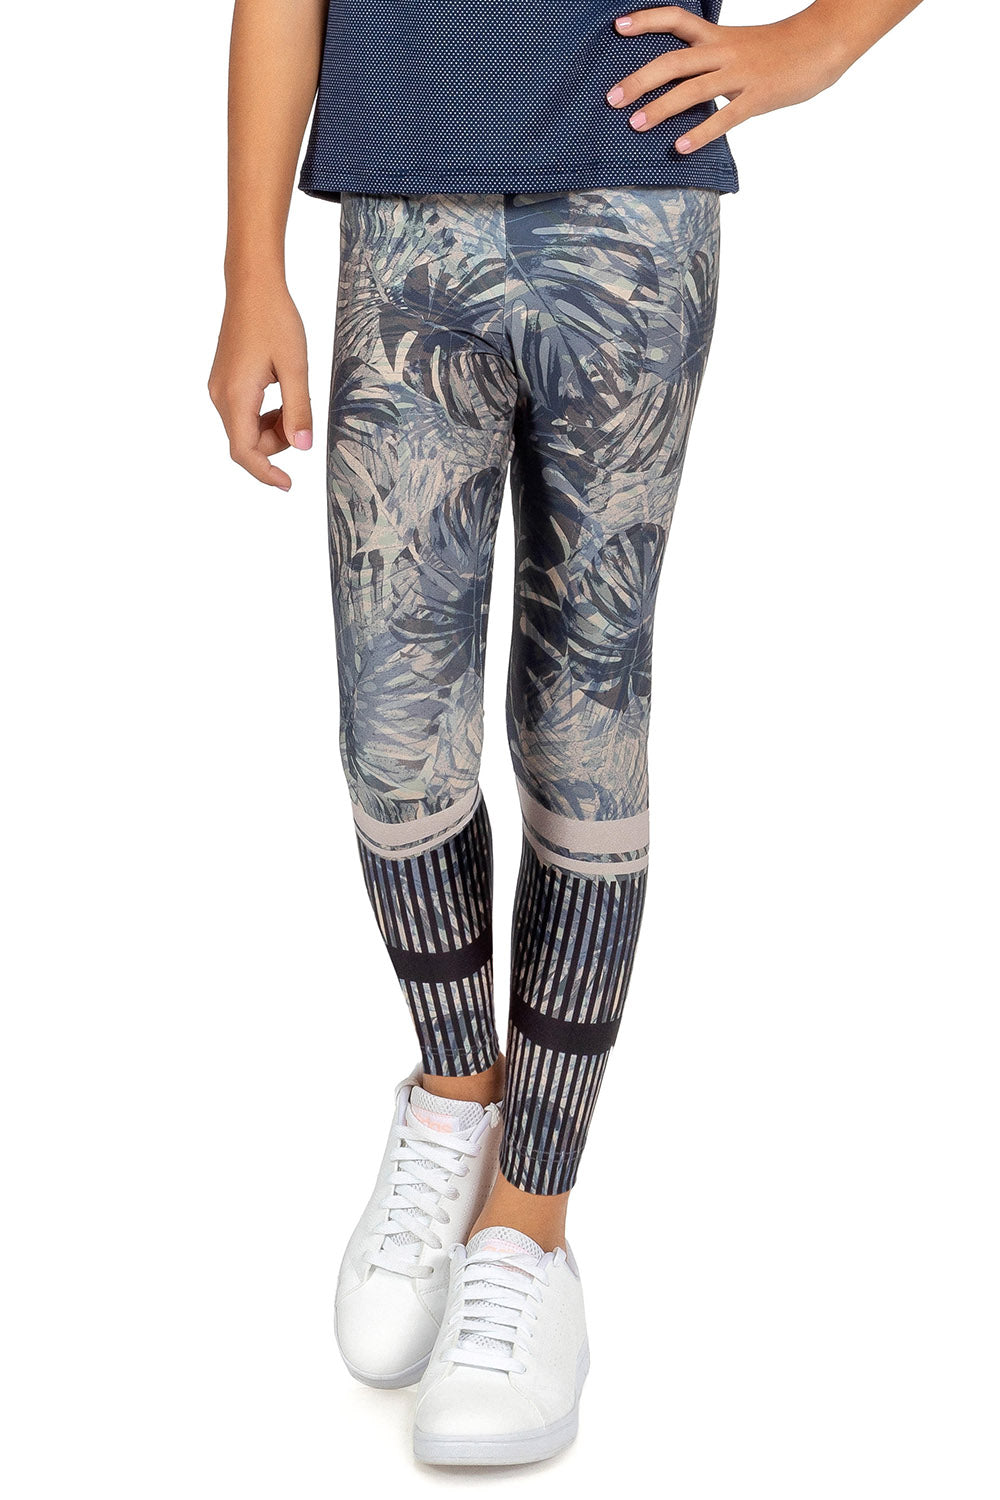 Discover Movement Kids Legging 1